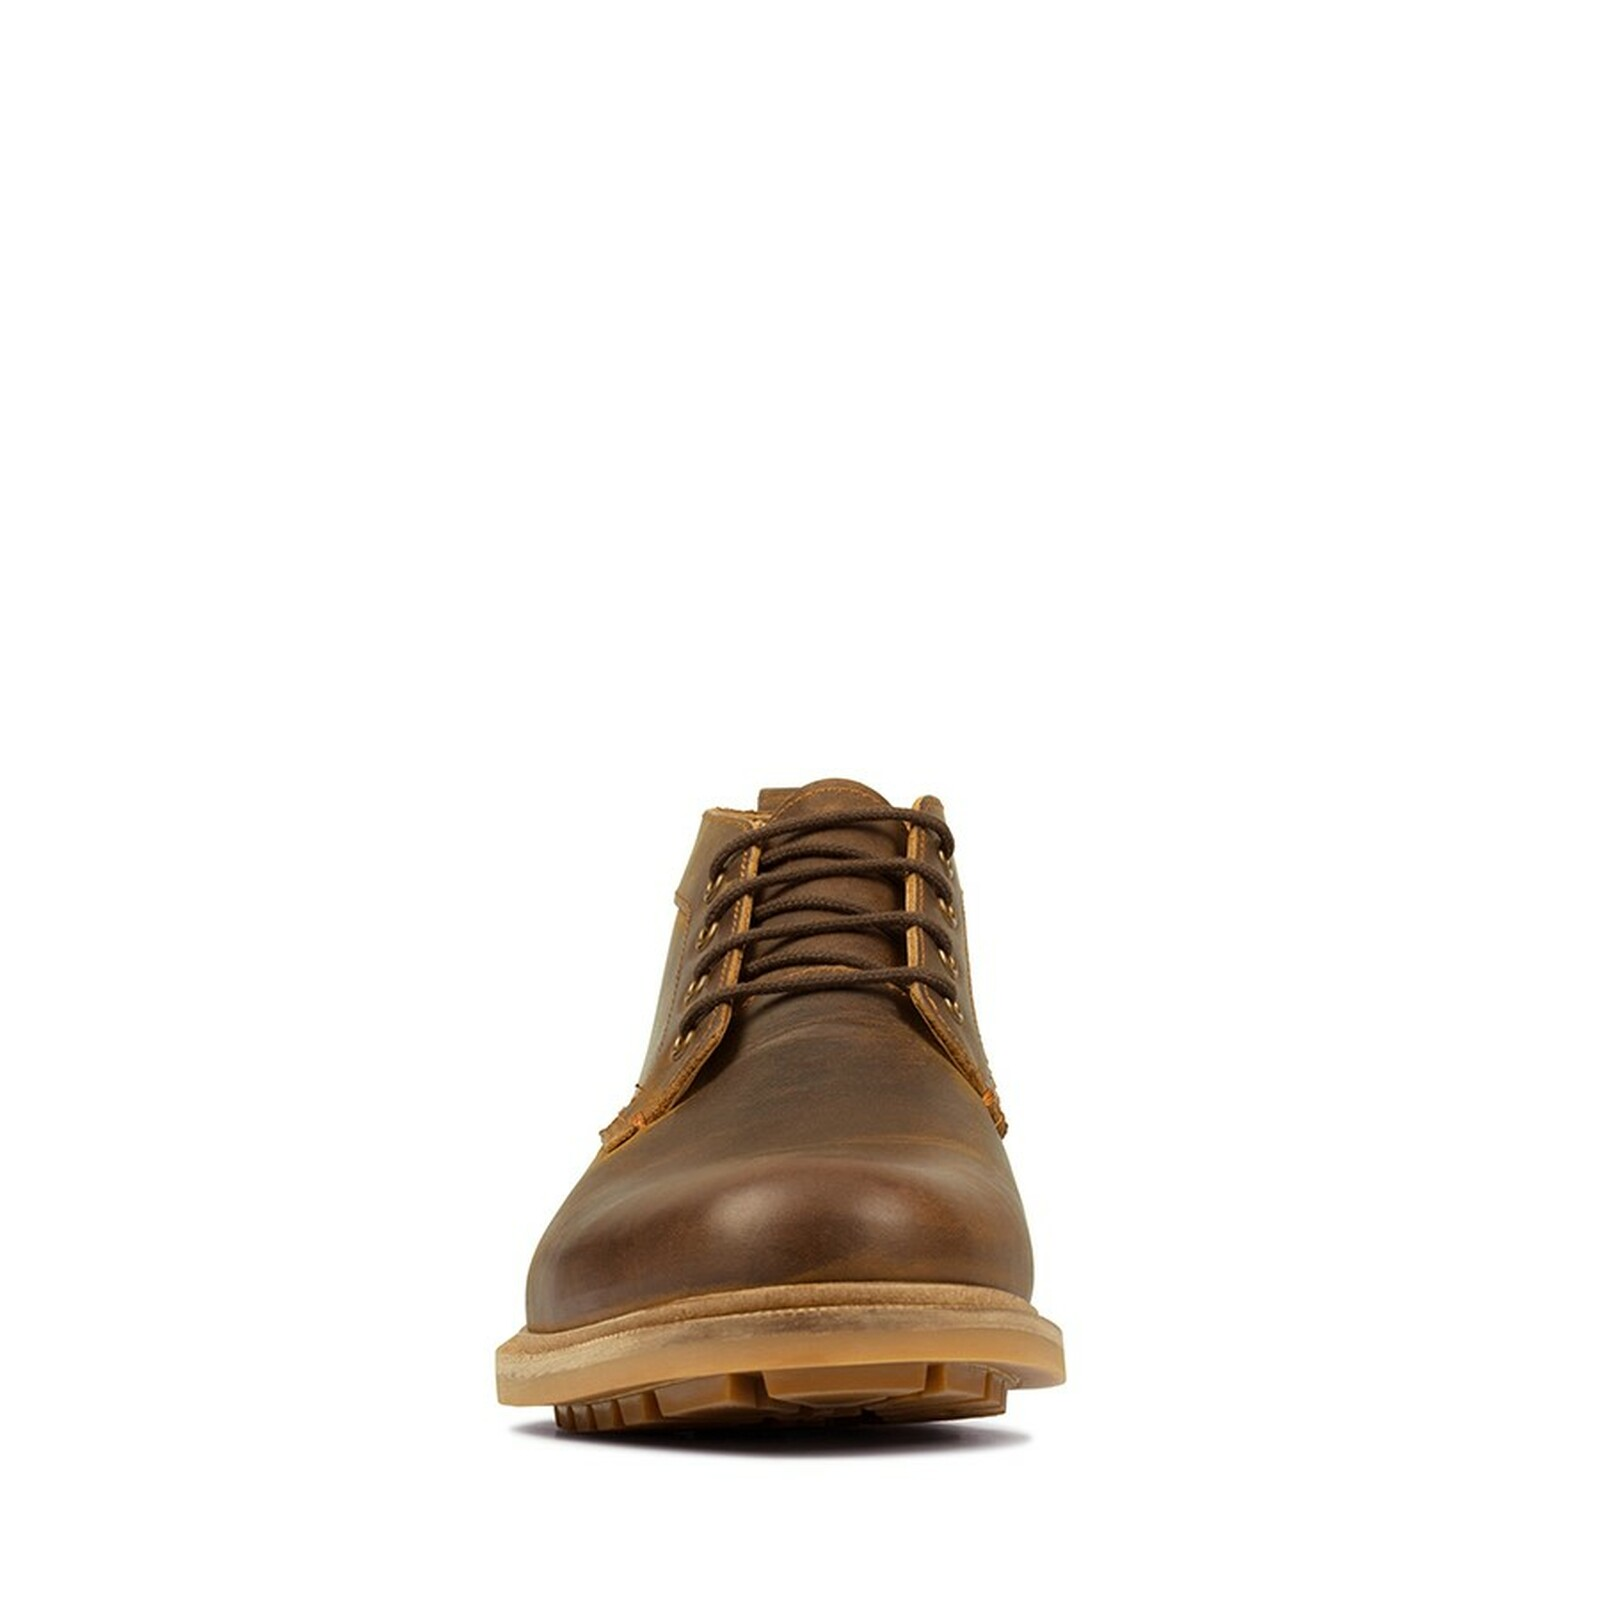 Clarks Mens FOXWELL MID Beeswax Leather